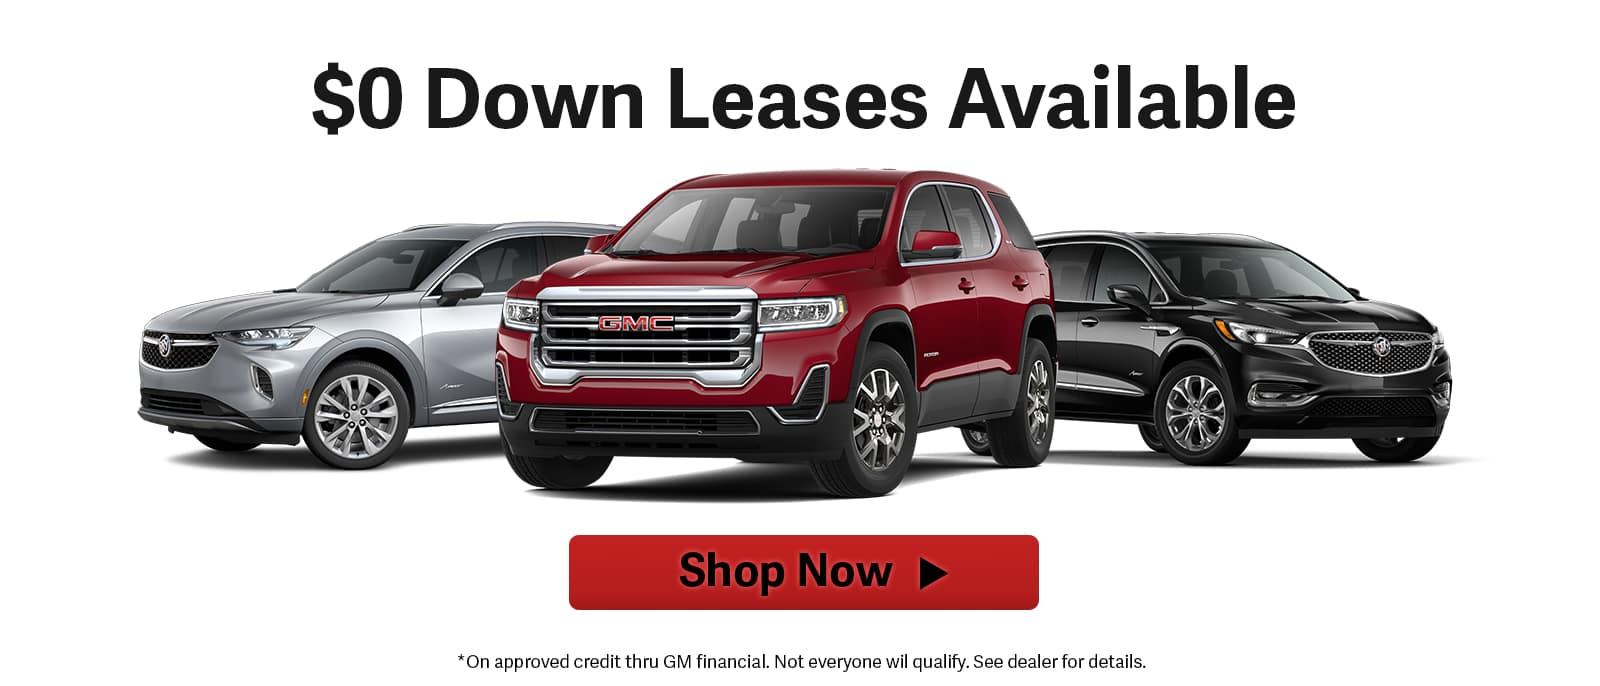 gm-lease-banner-8-21